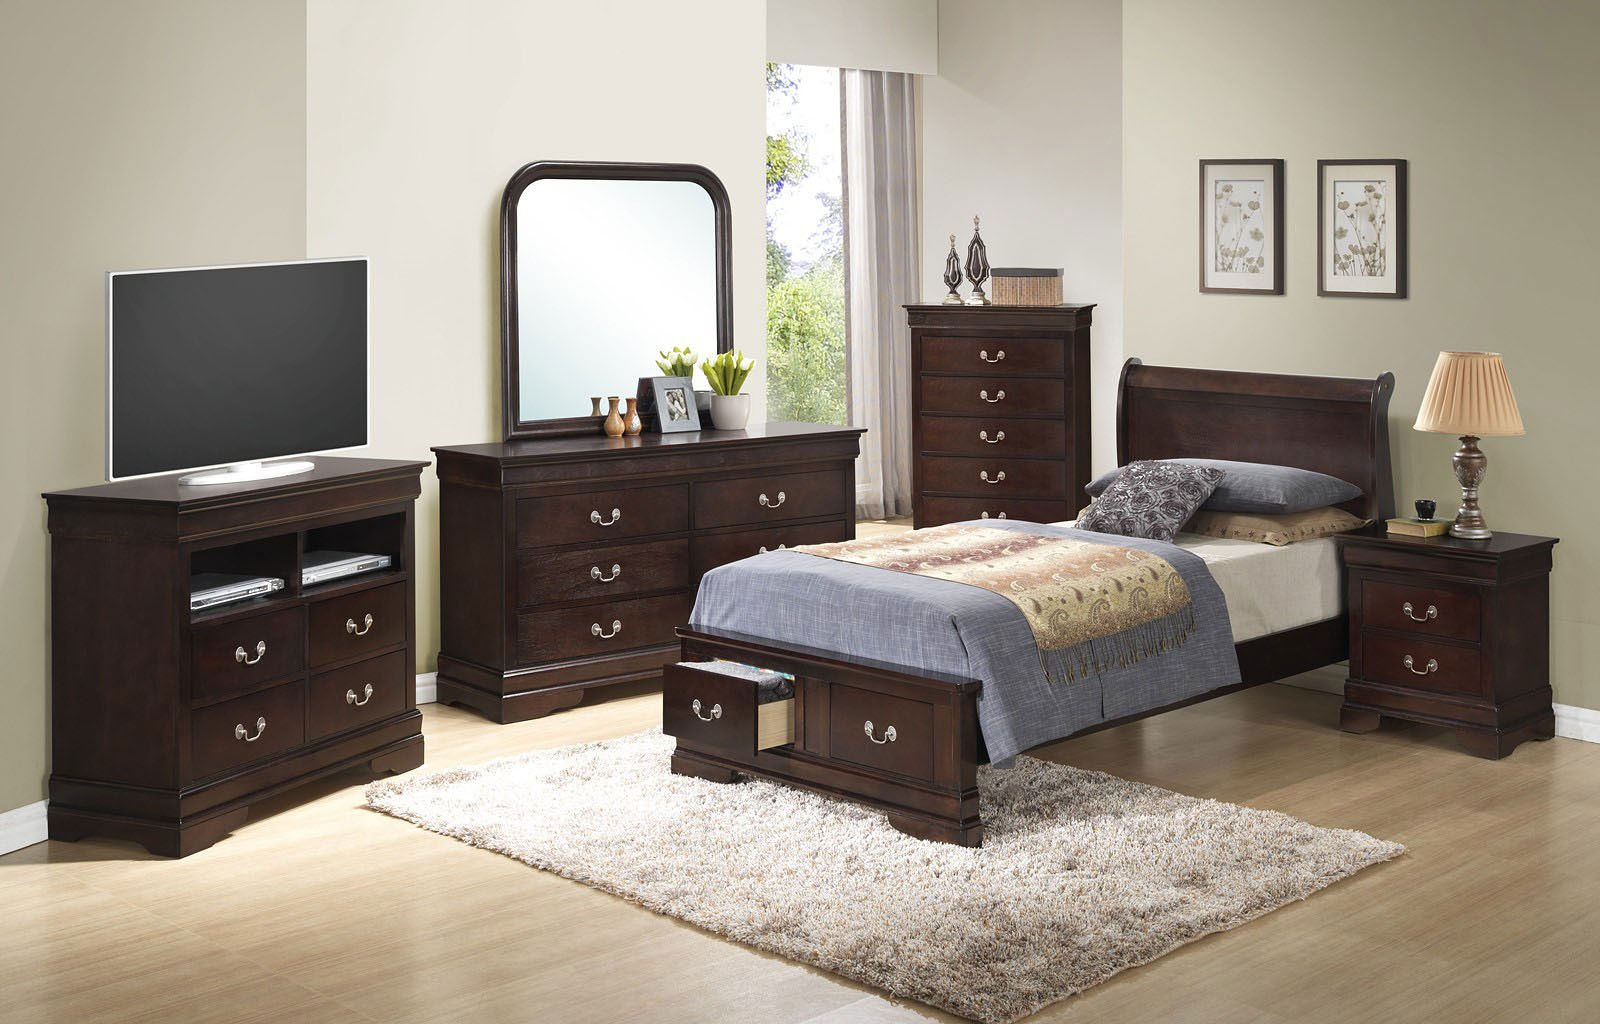 G3125 youth sleigh storage bedroom set by glory furniture - Youth bedroom furniture with storage ...